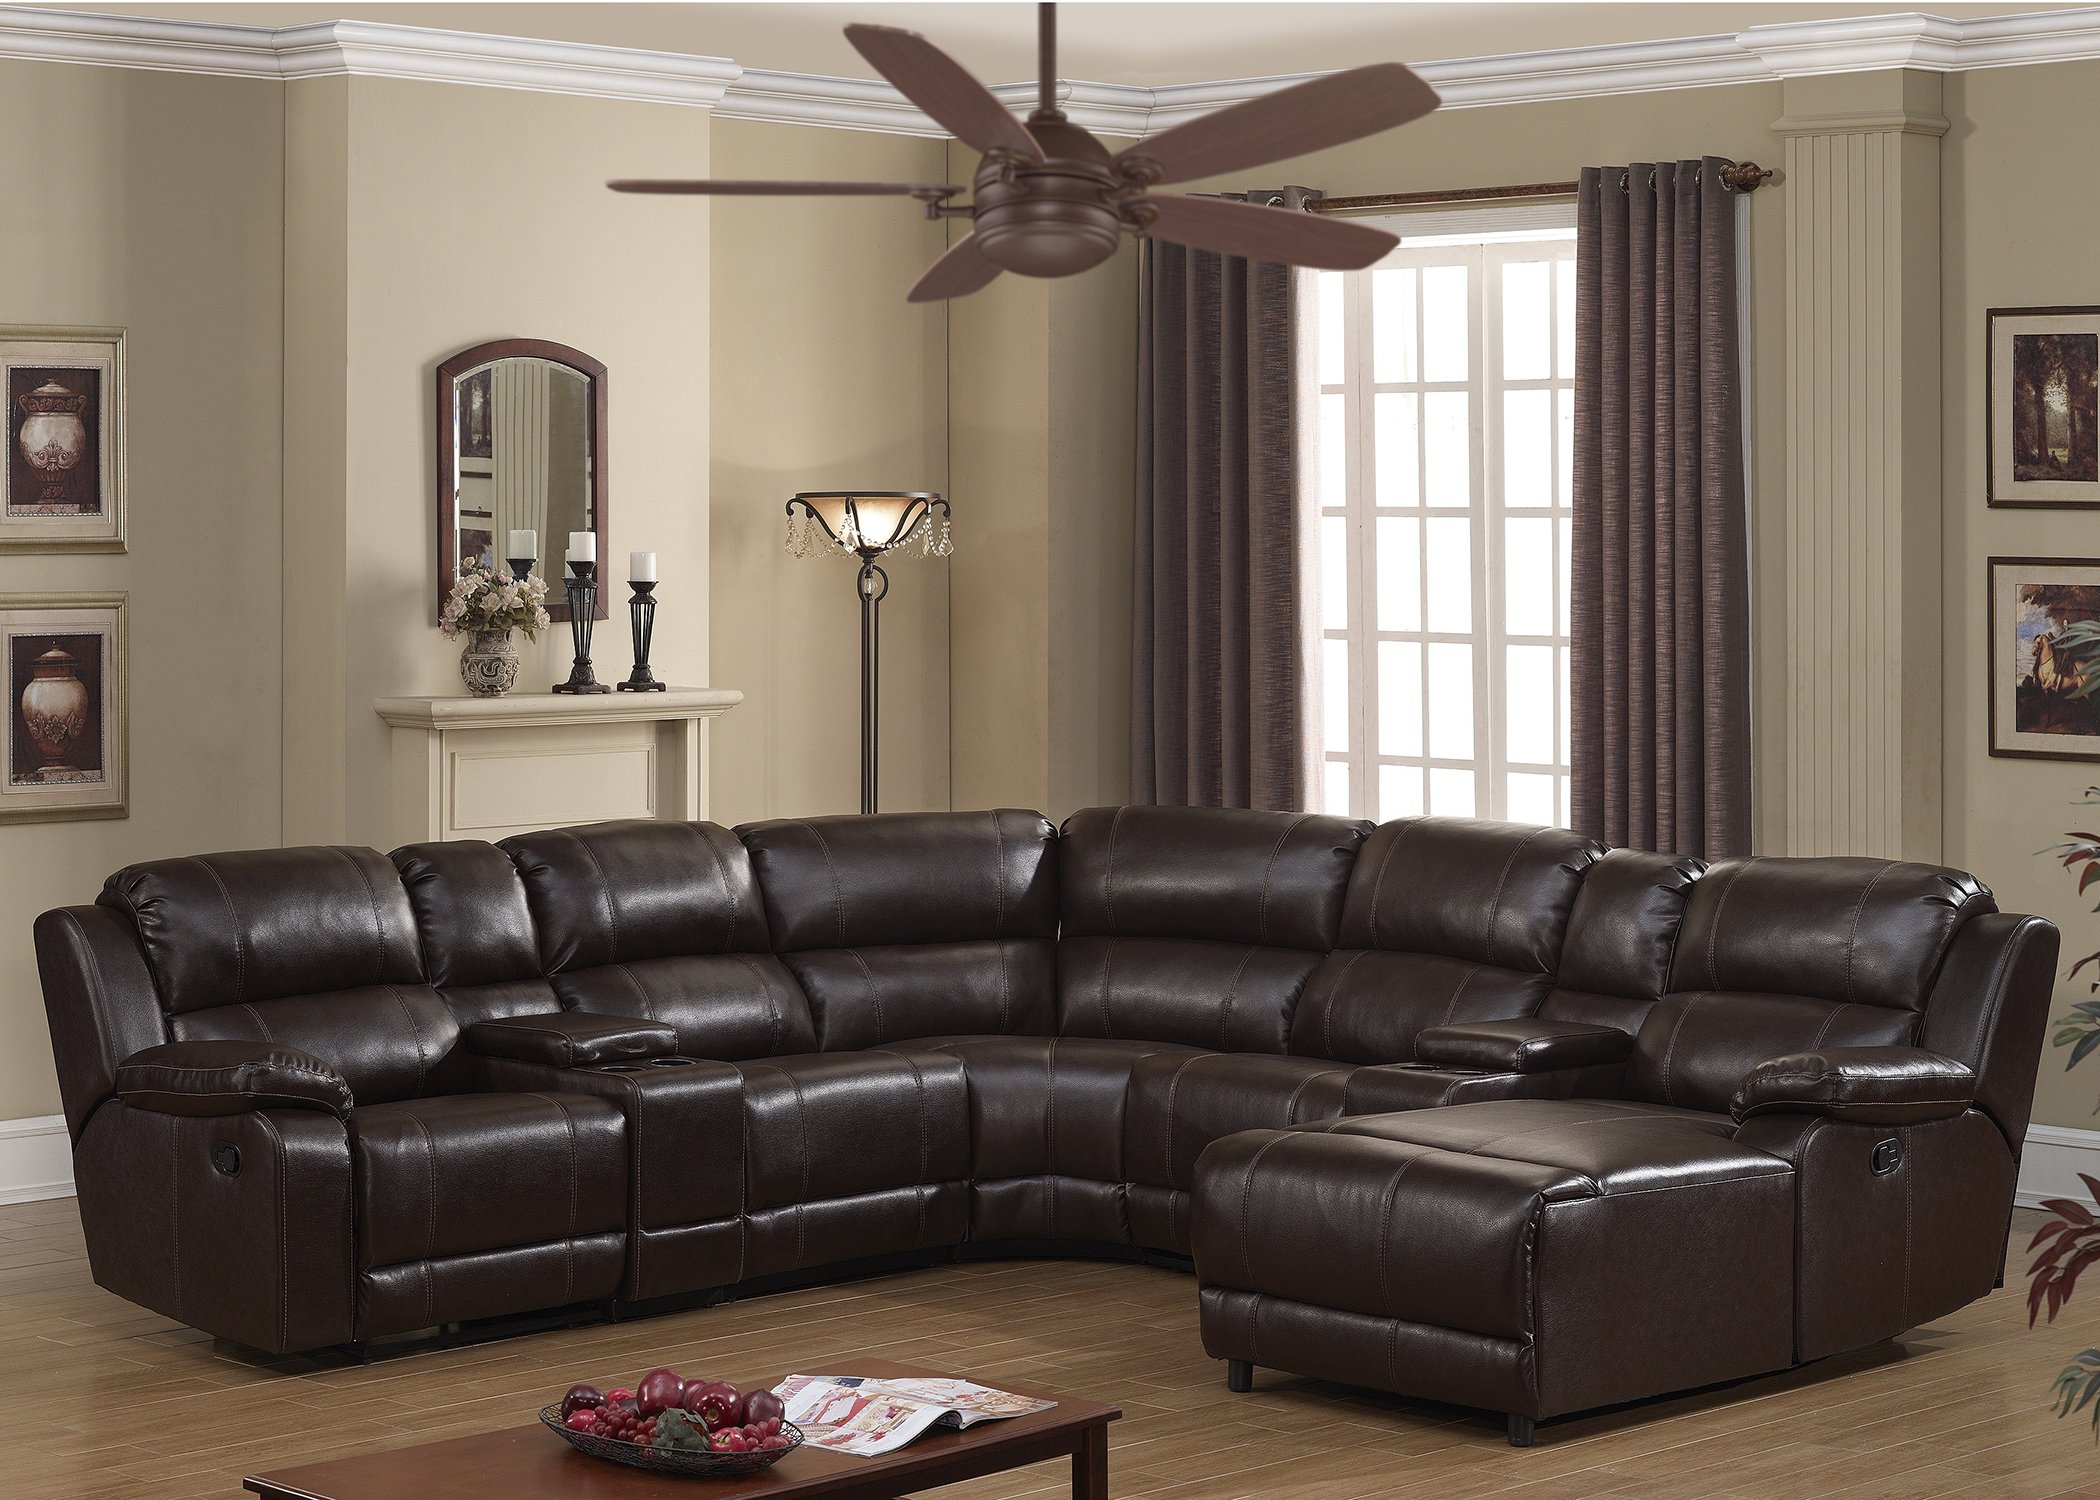 AC Pacific Colton Collection Transitional 6-Piece Upholstered Leather Reclining Living Room Sectional Set with Dual Recliners, 2 Storage Consoles, and 4 Cup Holders, Dark Brown by AC Pacific